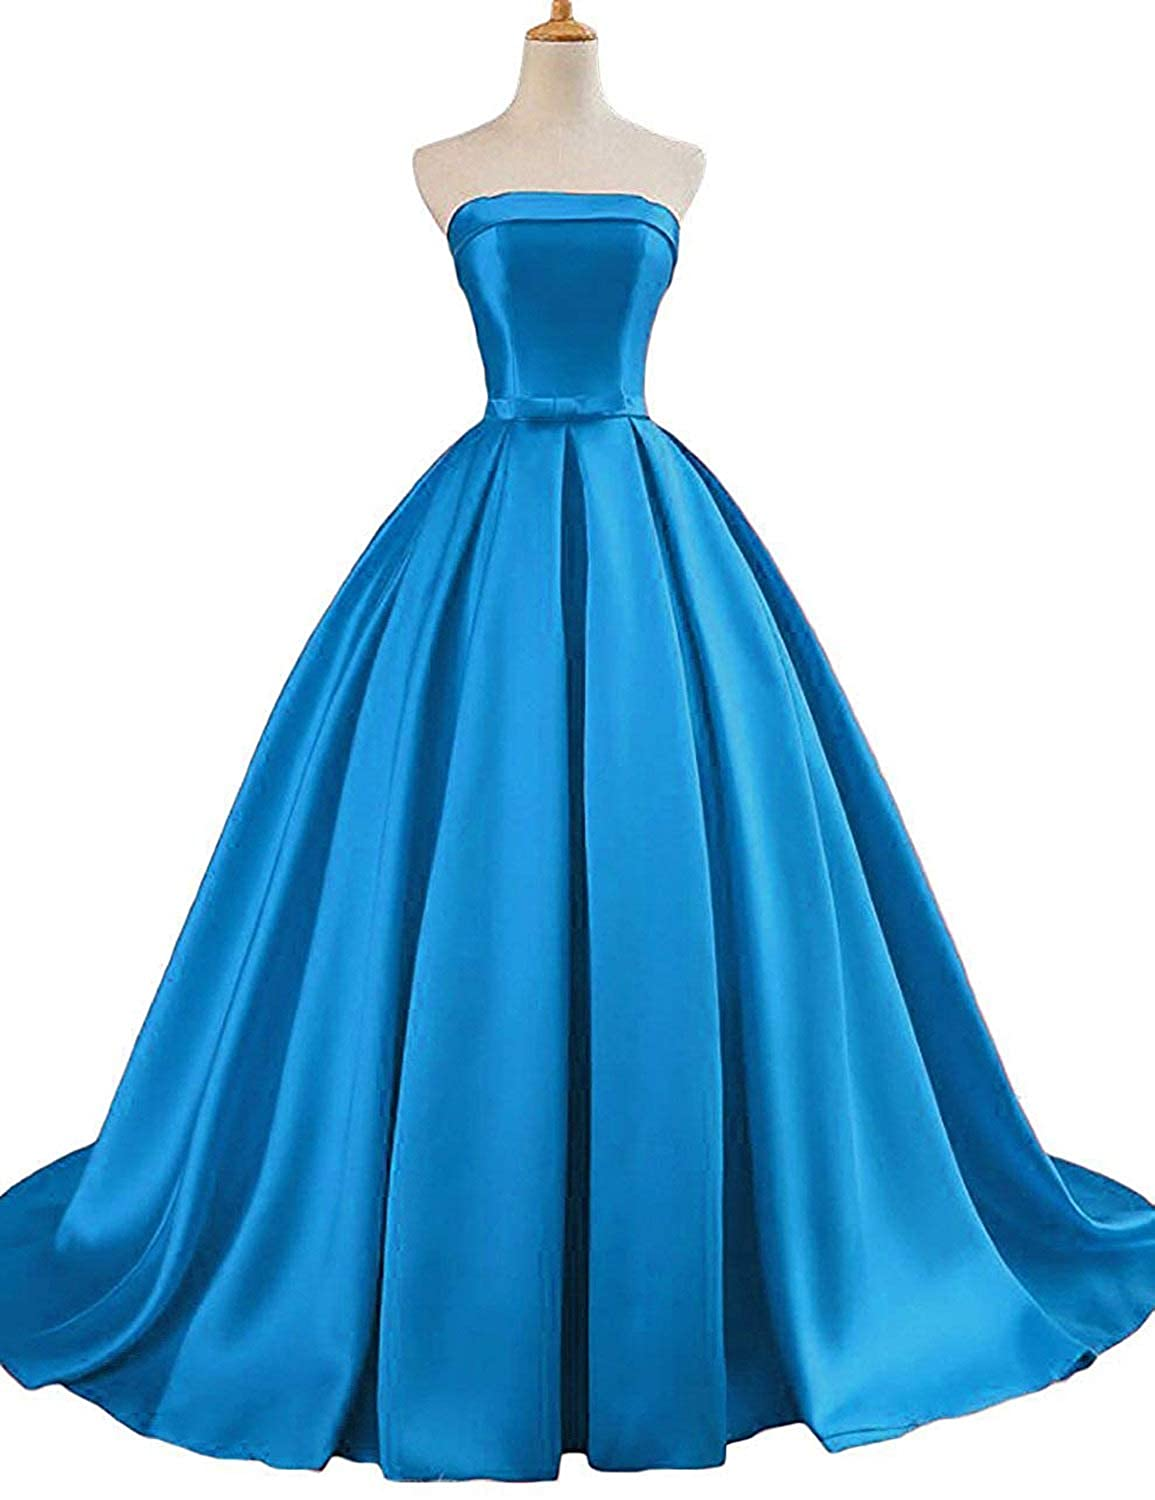 bluee Vimans Long Strapless Prom Dresses for Women Satin Wedding Party Gown D3001